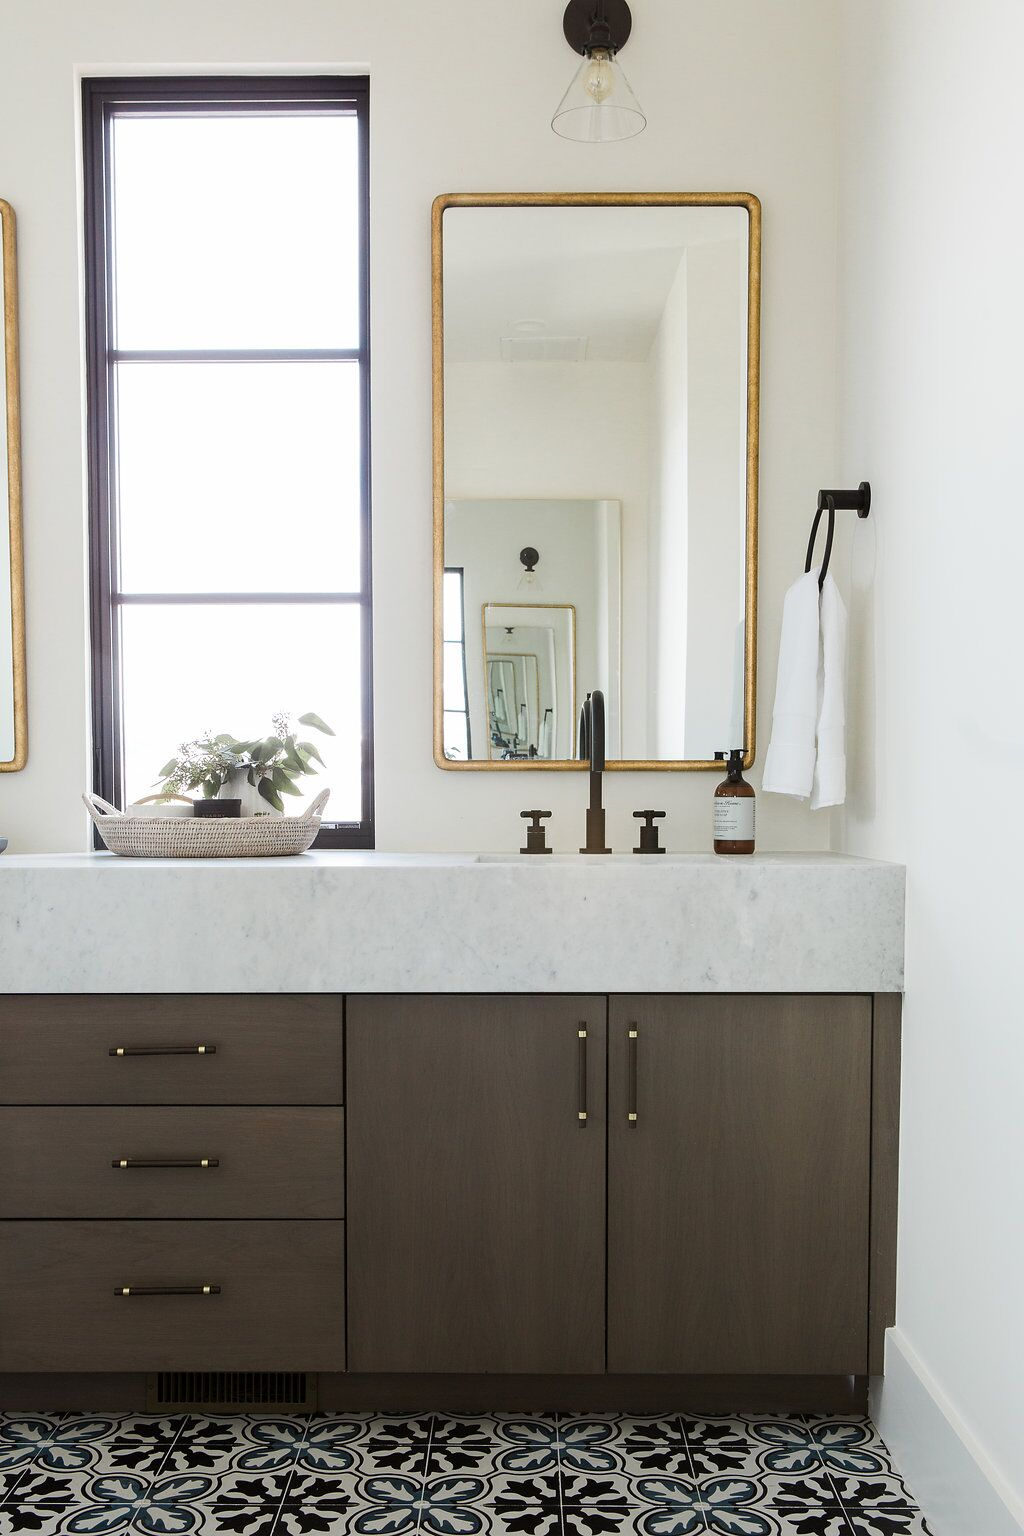 Guest bathroom with double vanity, gold mirrors, and patterned tile